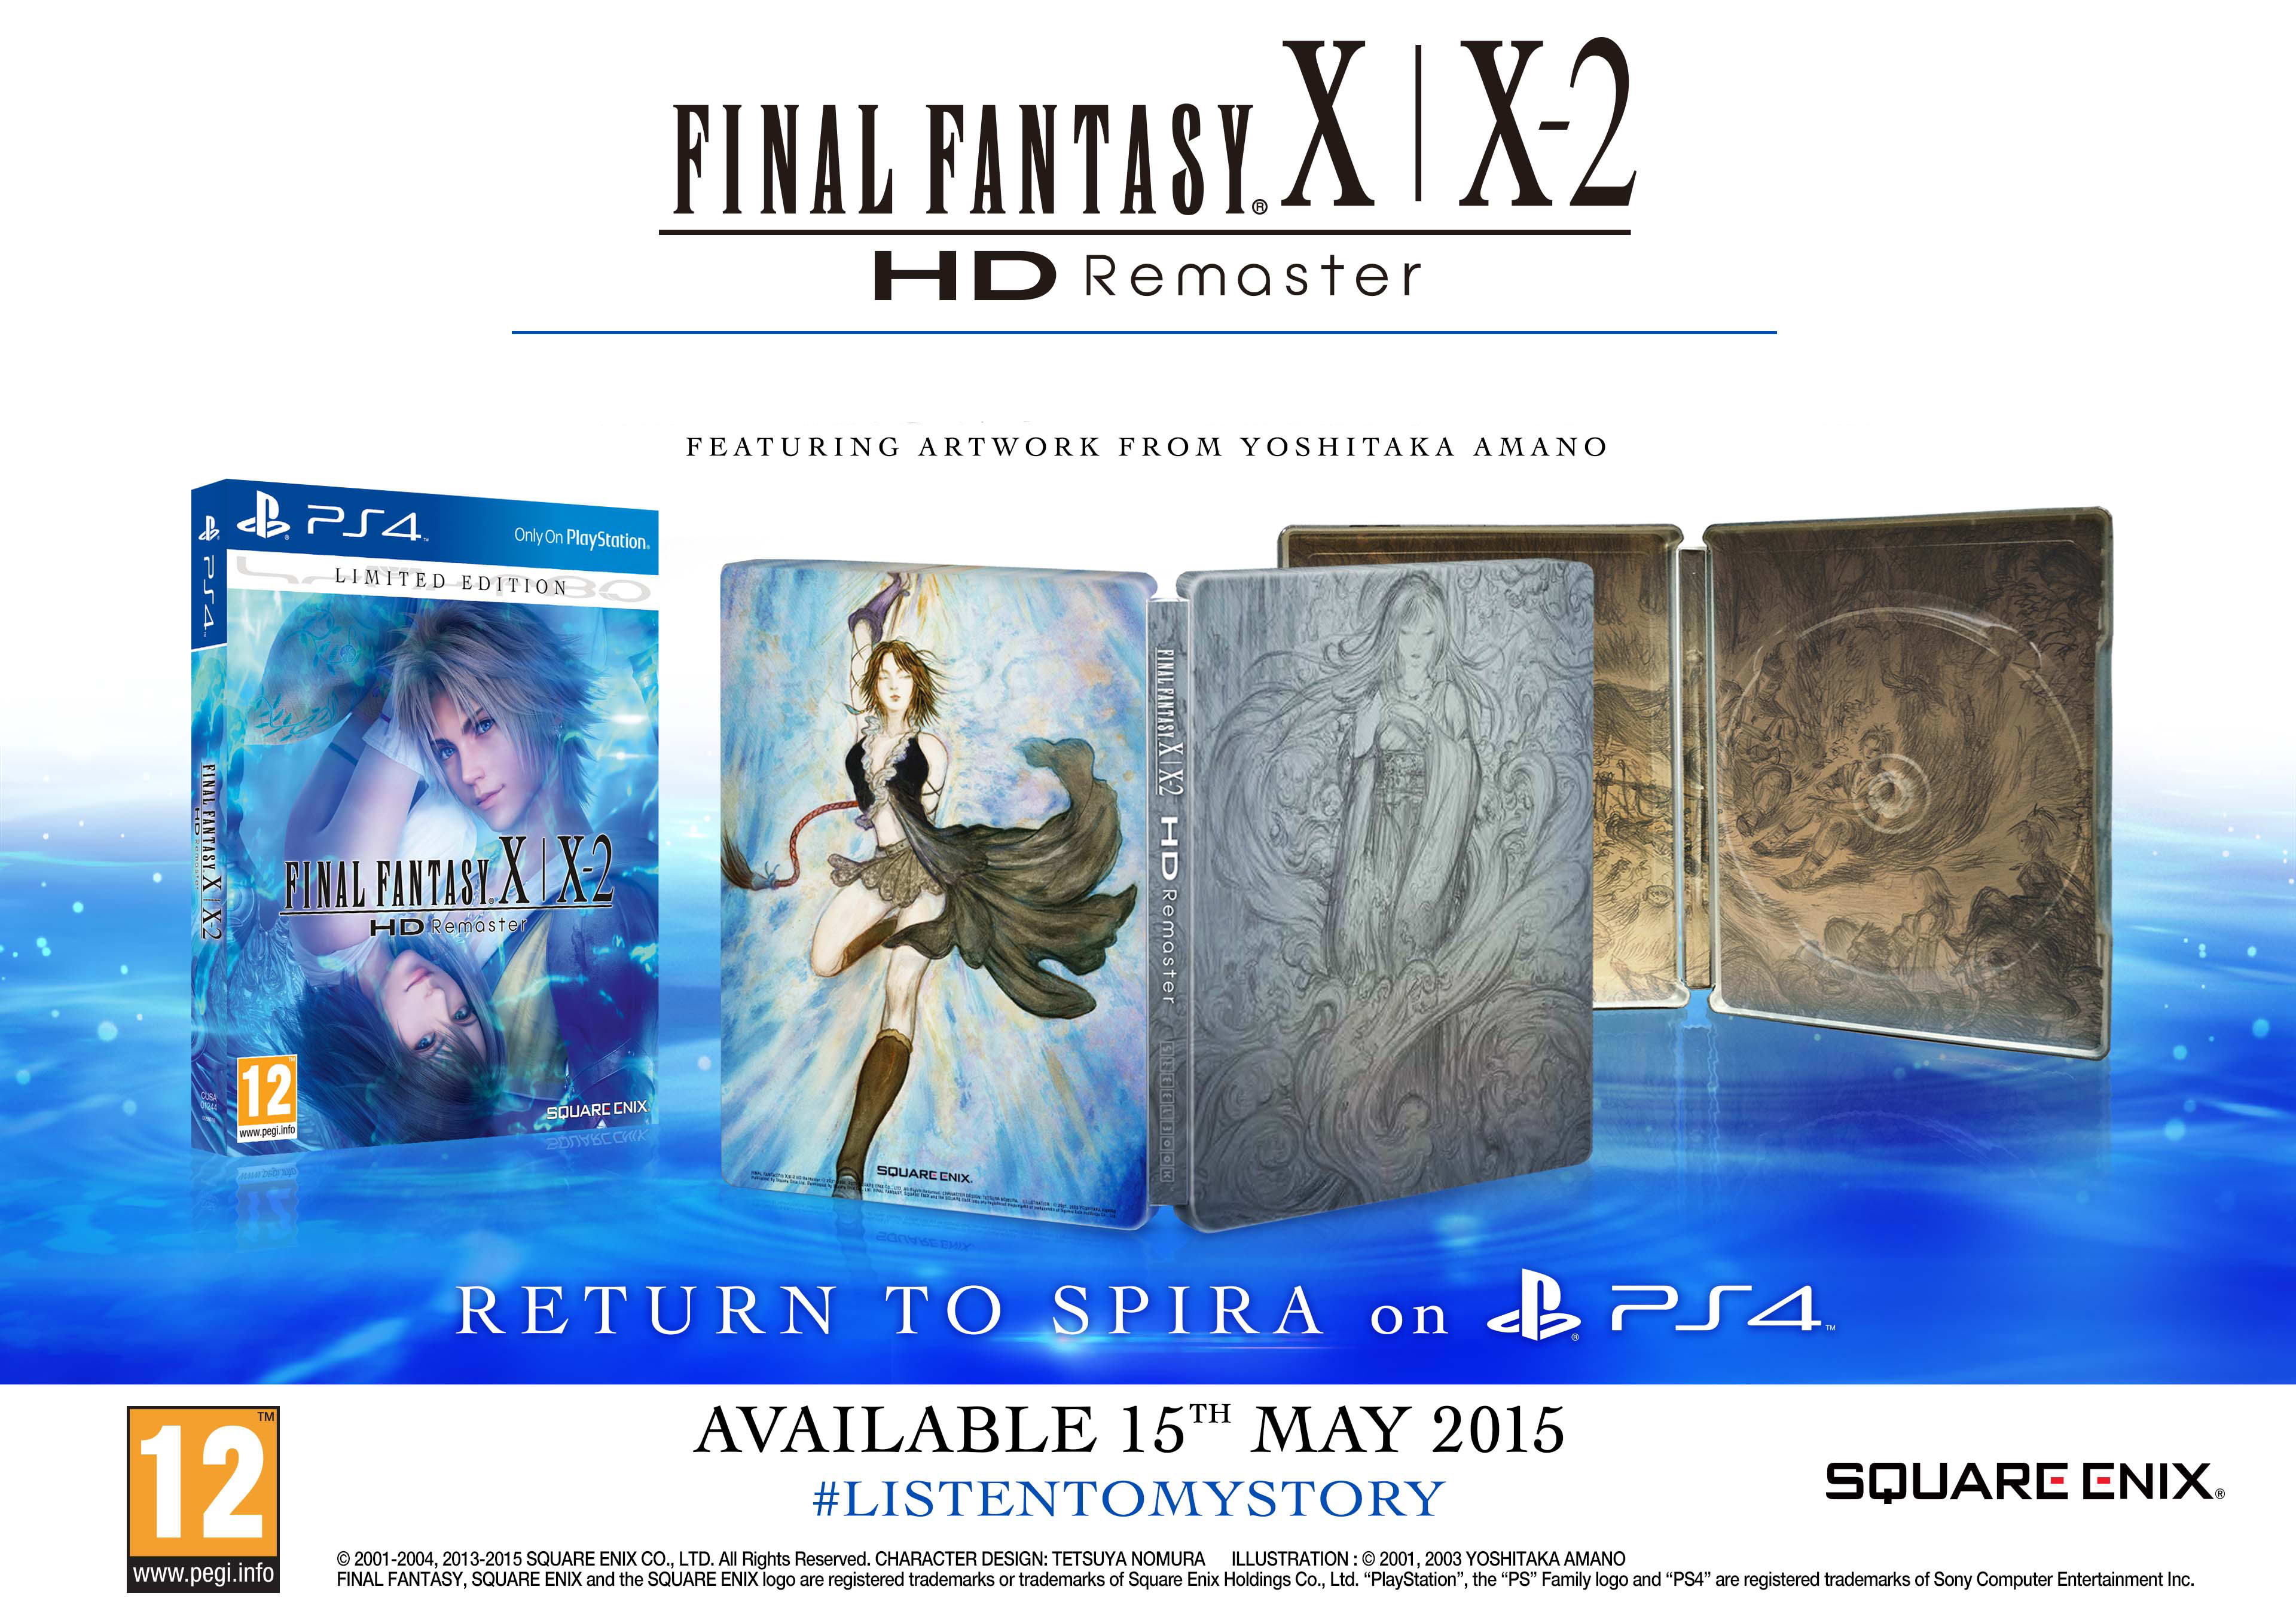 http://img.game.co.uk/images/content/SpecialEditions/FinalFantasyXX2BeautyShot.PNG